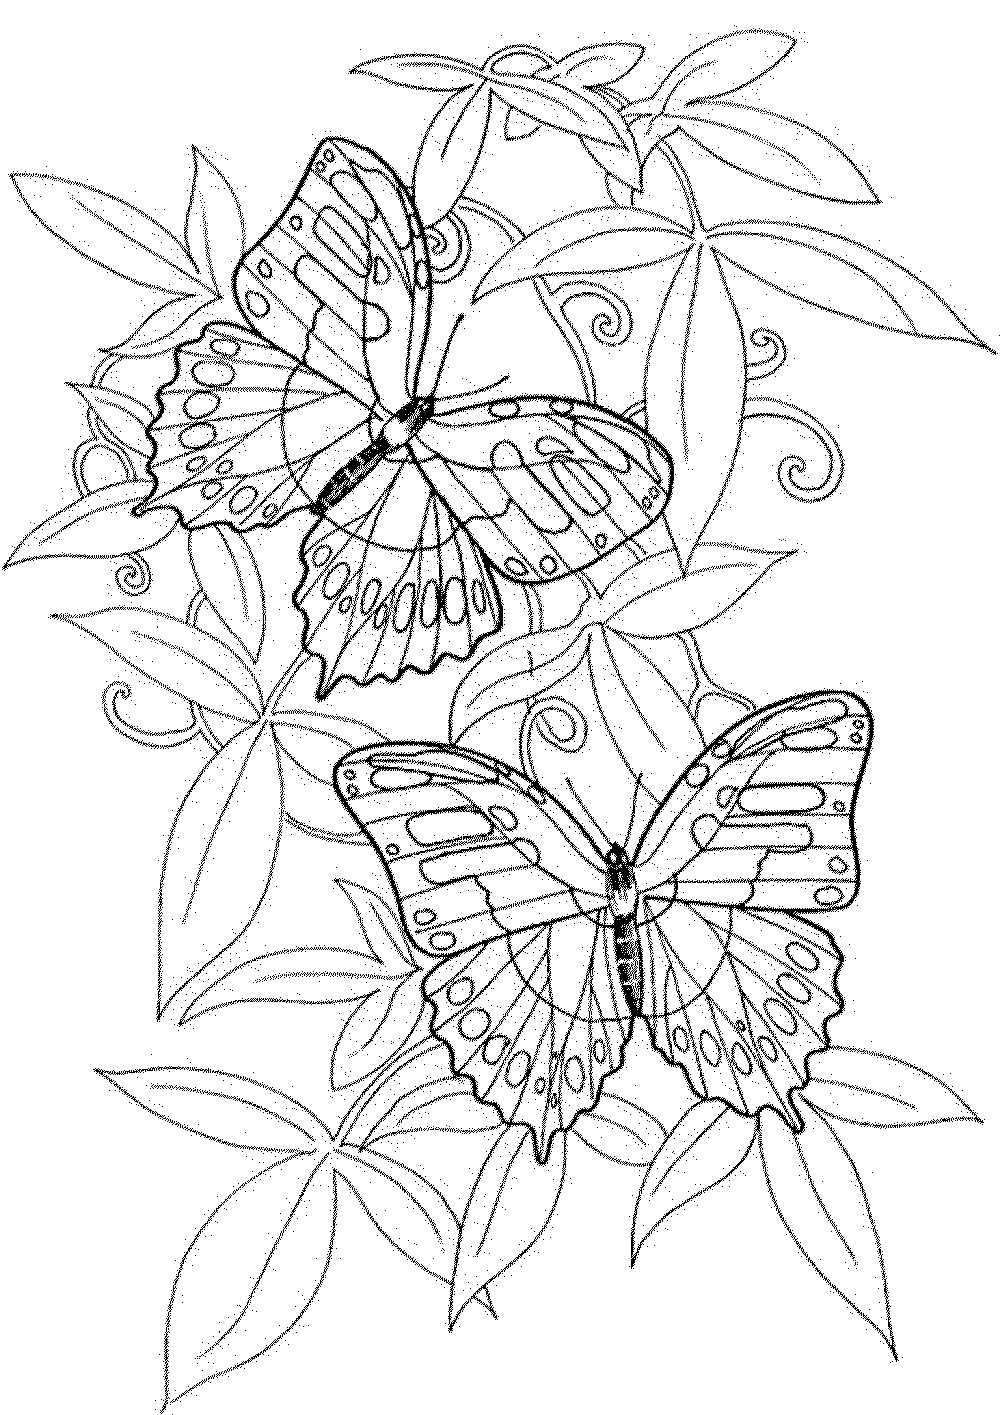 butterfly coloring pages for adults butterfly coloring page coloring for butterfly adults pages